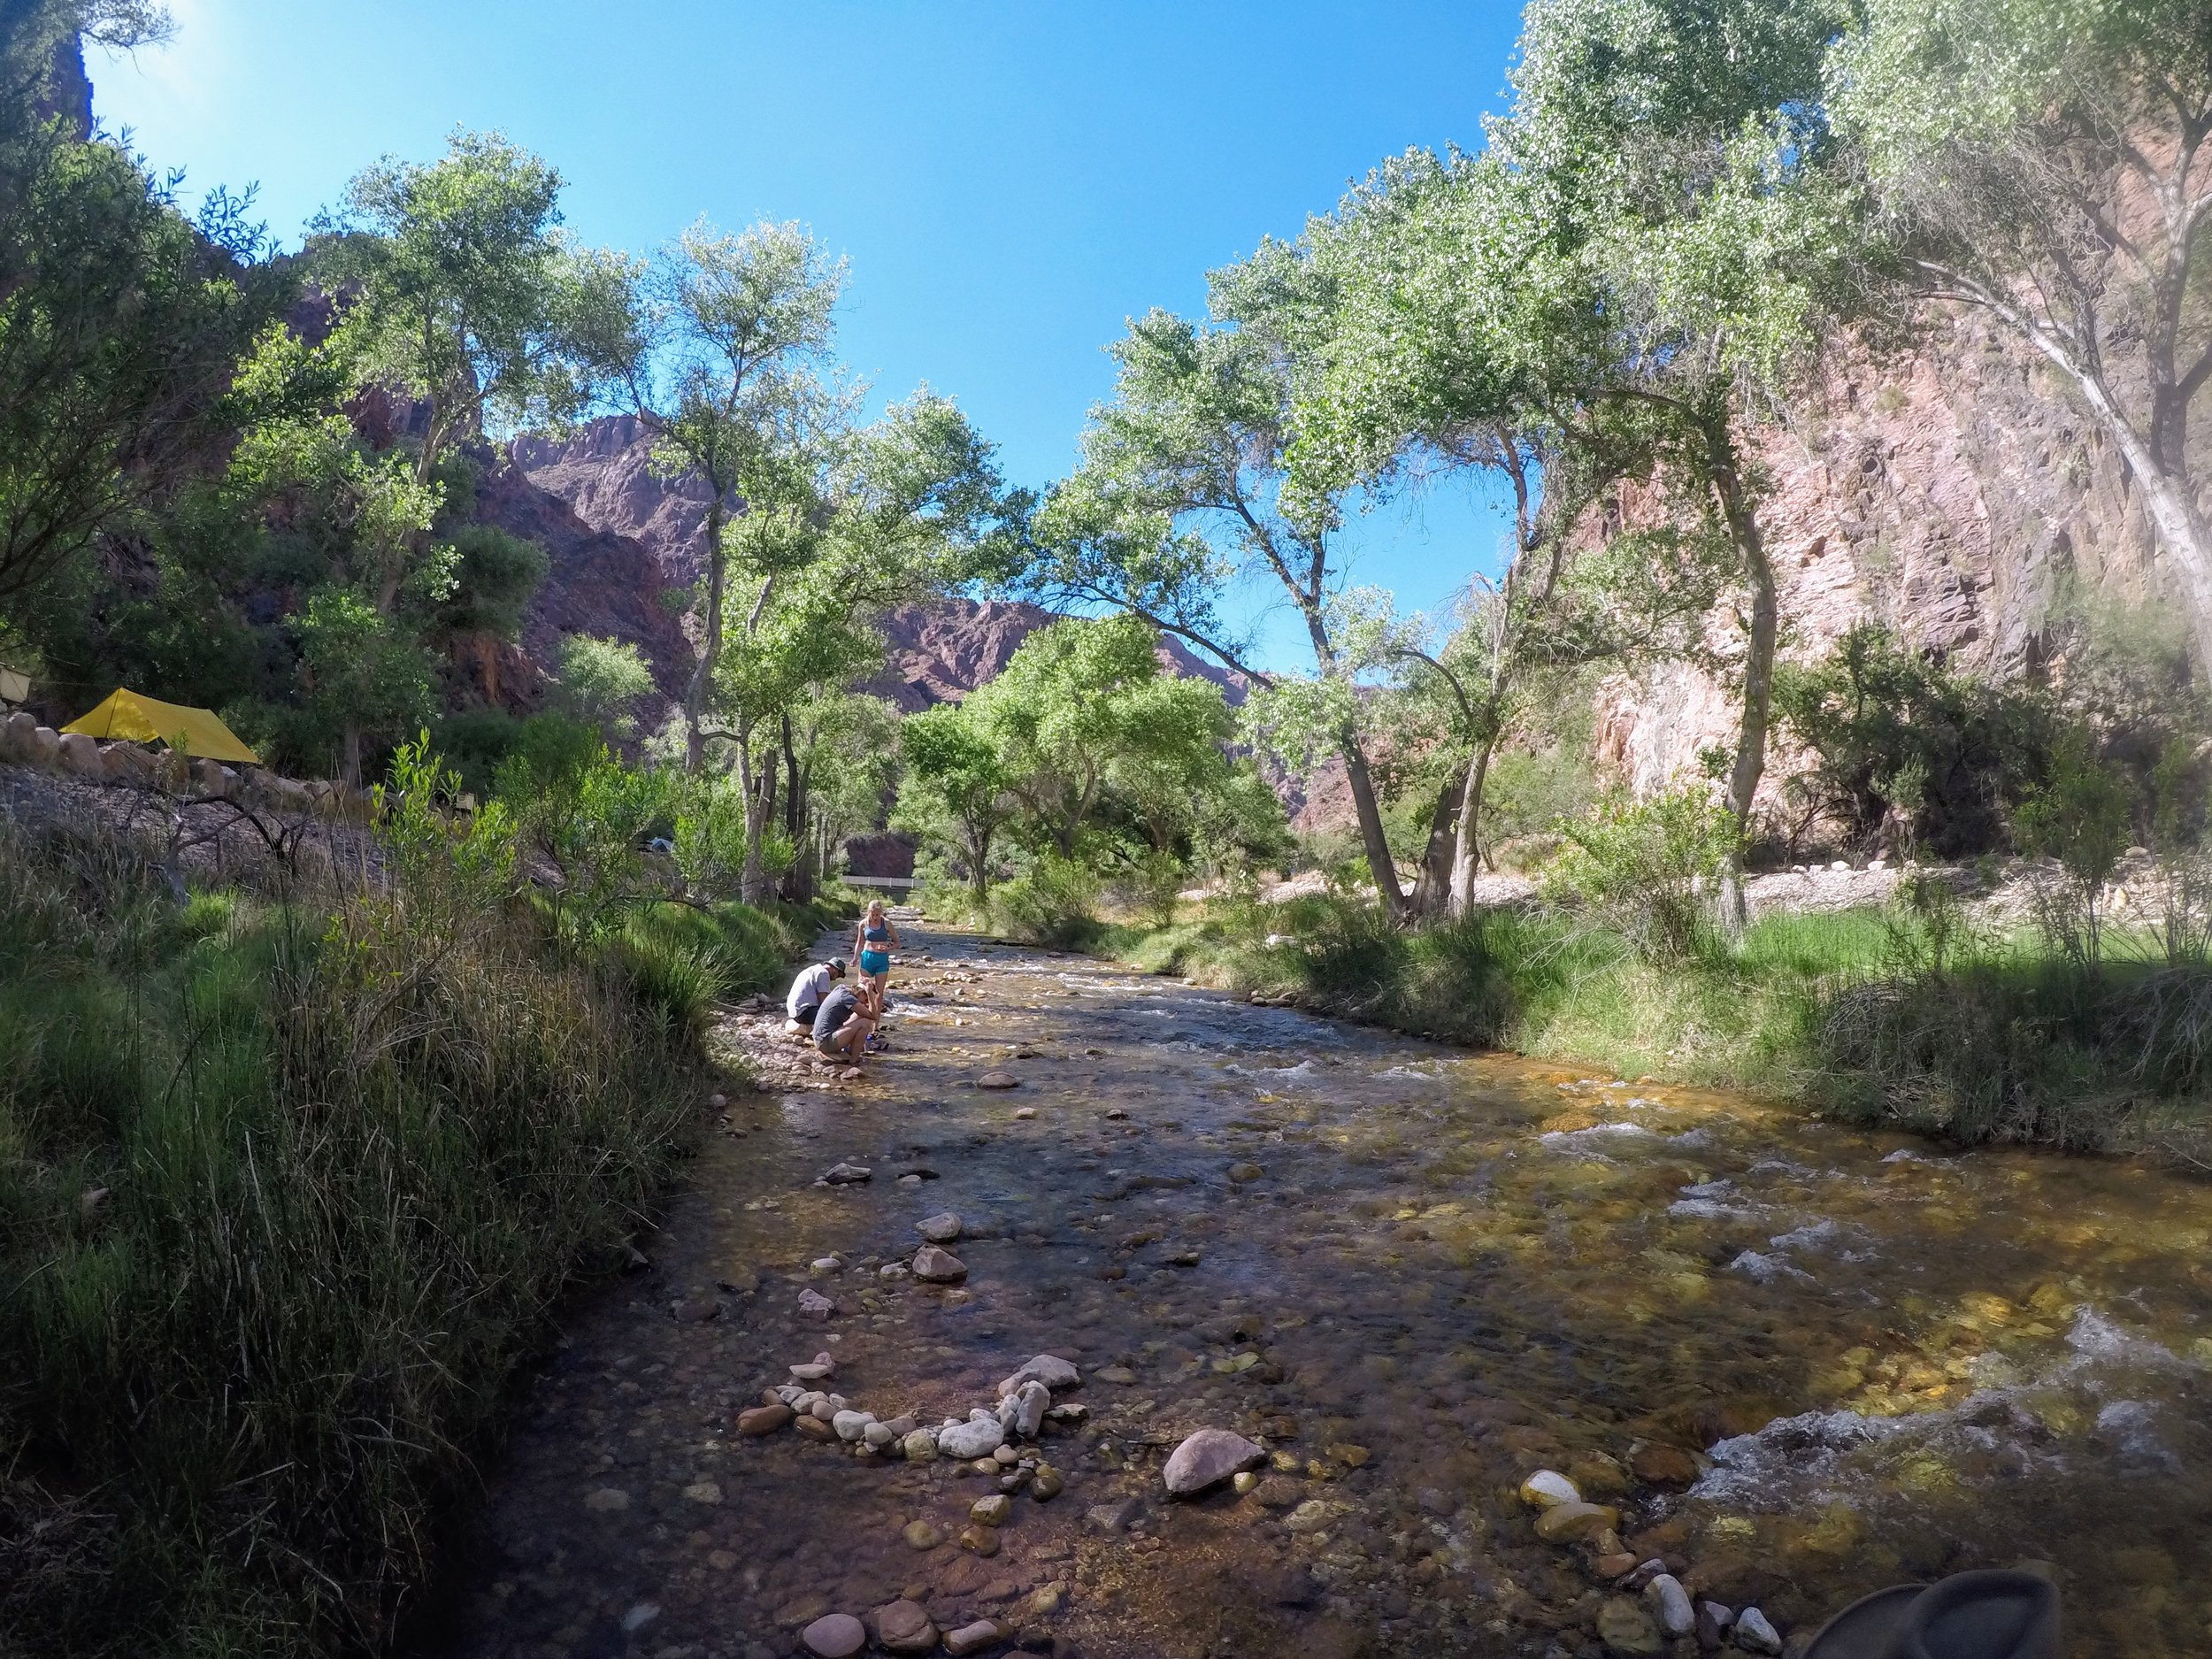 Bright Angel Creek runs to the right of the campground.